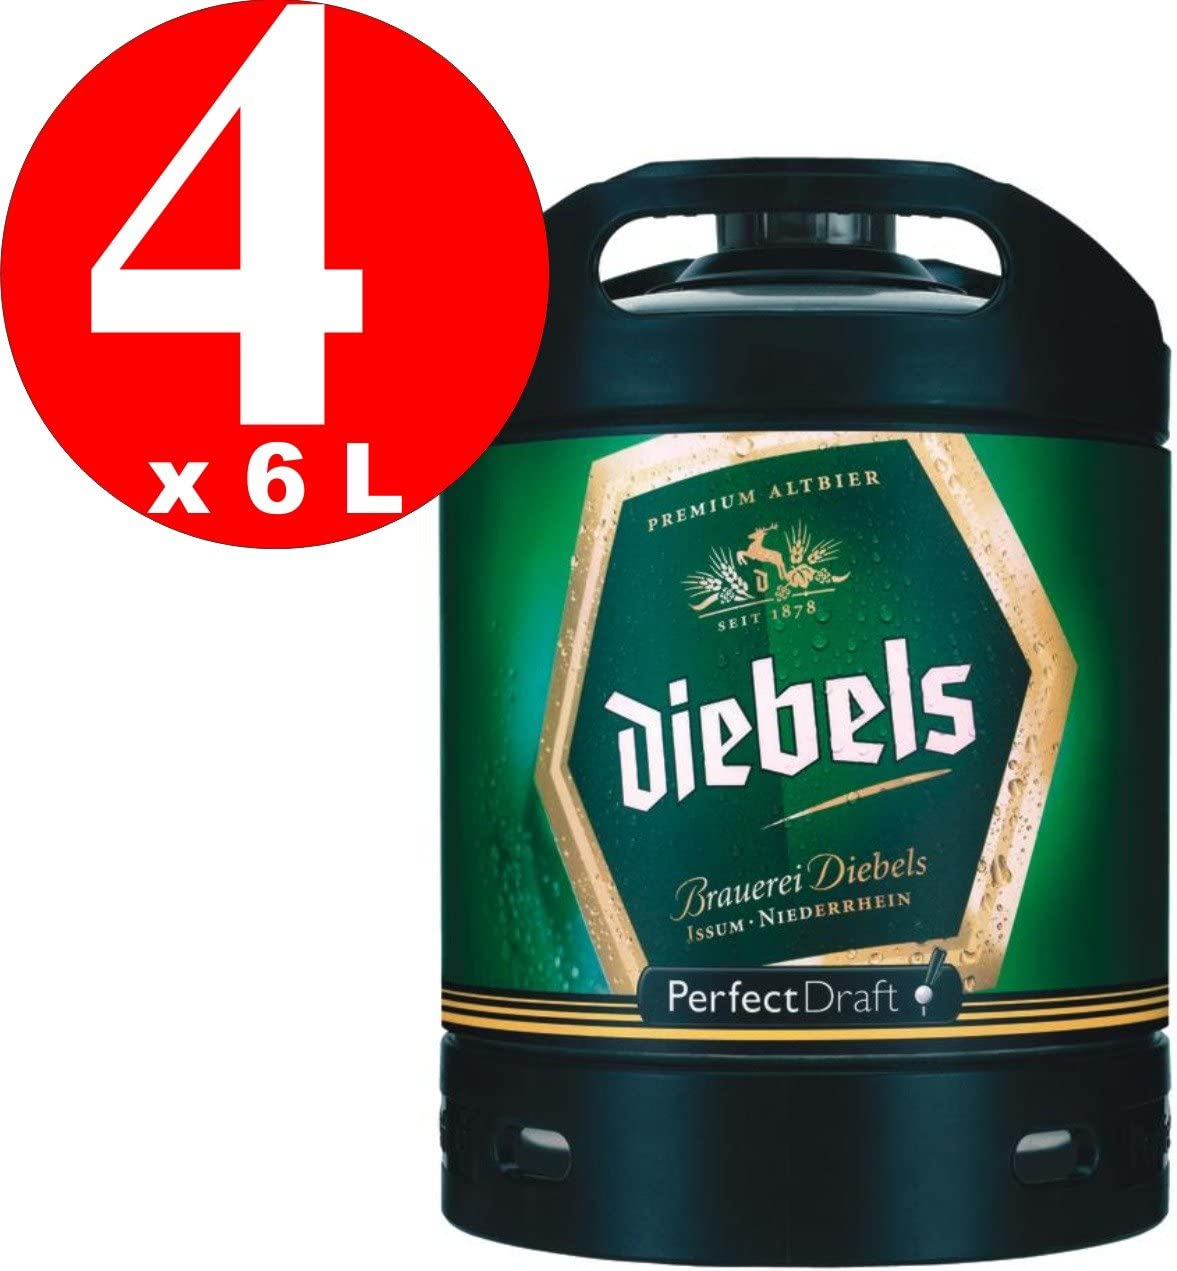 4 x Diebels Alt Perfect Draft barril 6 litros de 4,9% vol.